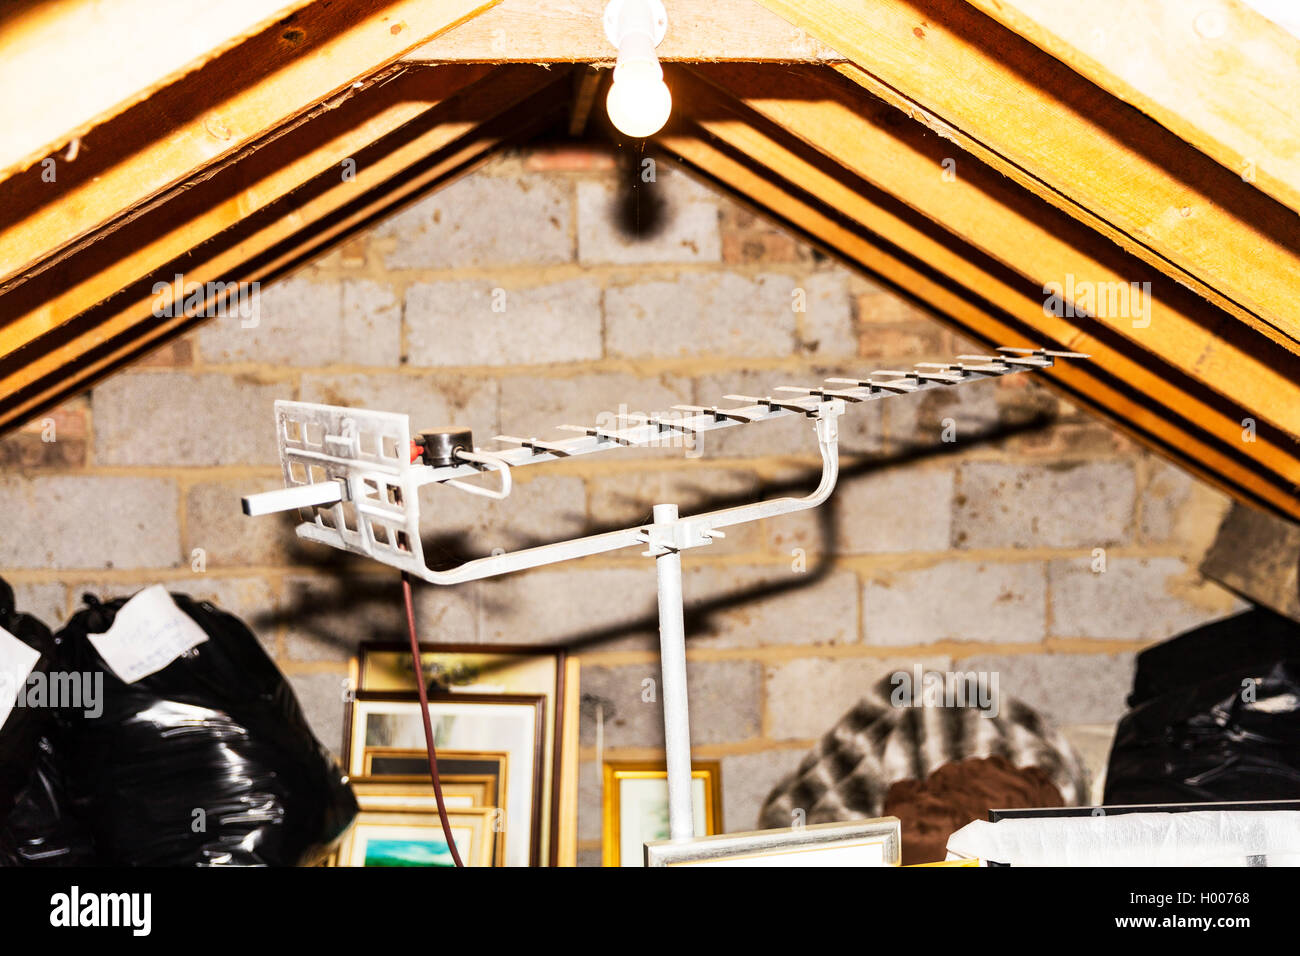 TV Ariel in House loft space attic space analogue ariel wooden beams supporting roof UK England GB - Stock Image